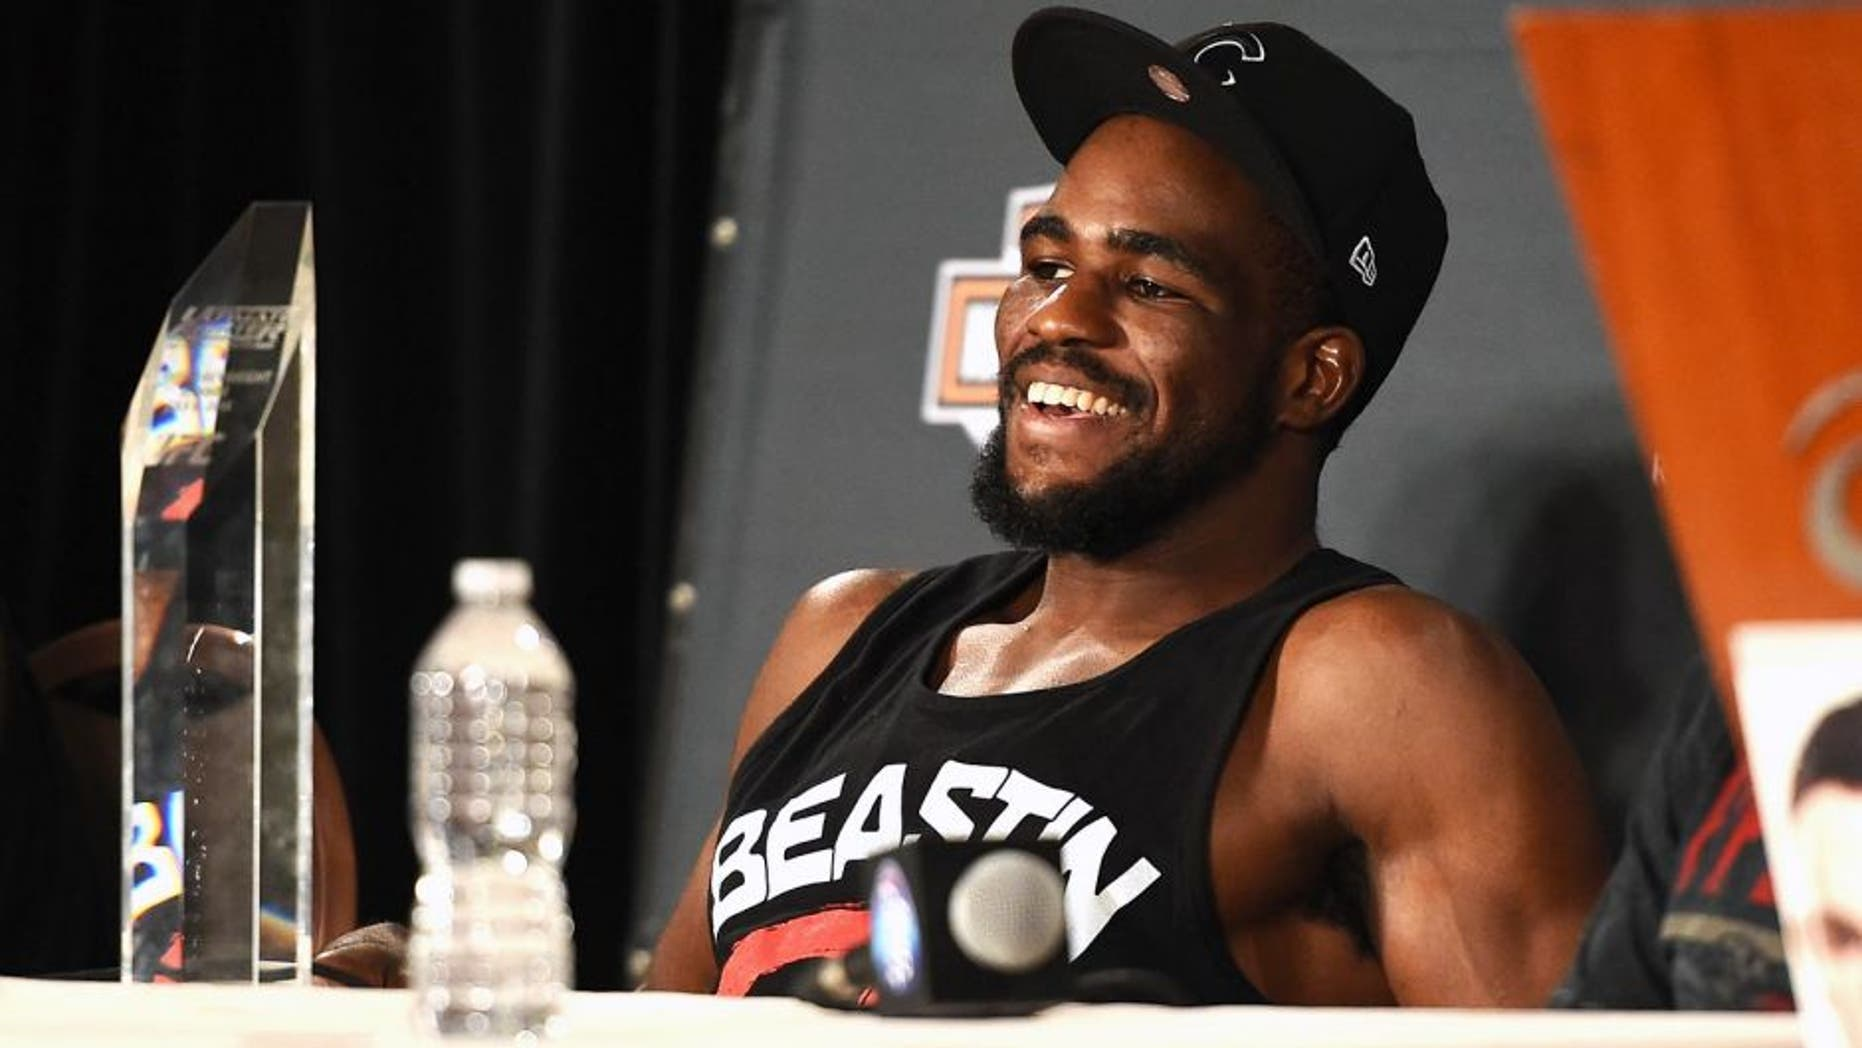 LAS VEGAS, NV - JULY 6: Corey Anderson speaks during the Ultimate Fighter Finale post fight press conference inside the Mandalay Bay Events Center on July 6, 2014 in Las Vegas, Nevada. (Photo by Jeff Bottari/Zuffa LLC/Zuffa LLC via Getty Images) *** Local Caption *** Corey Anderson